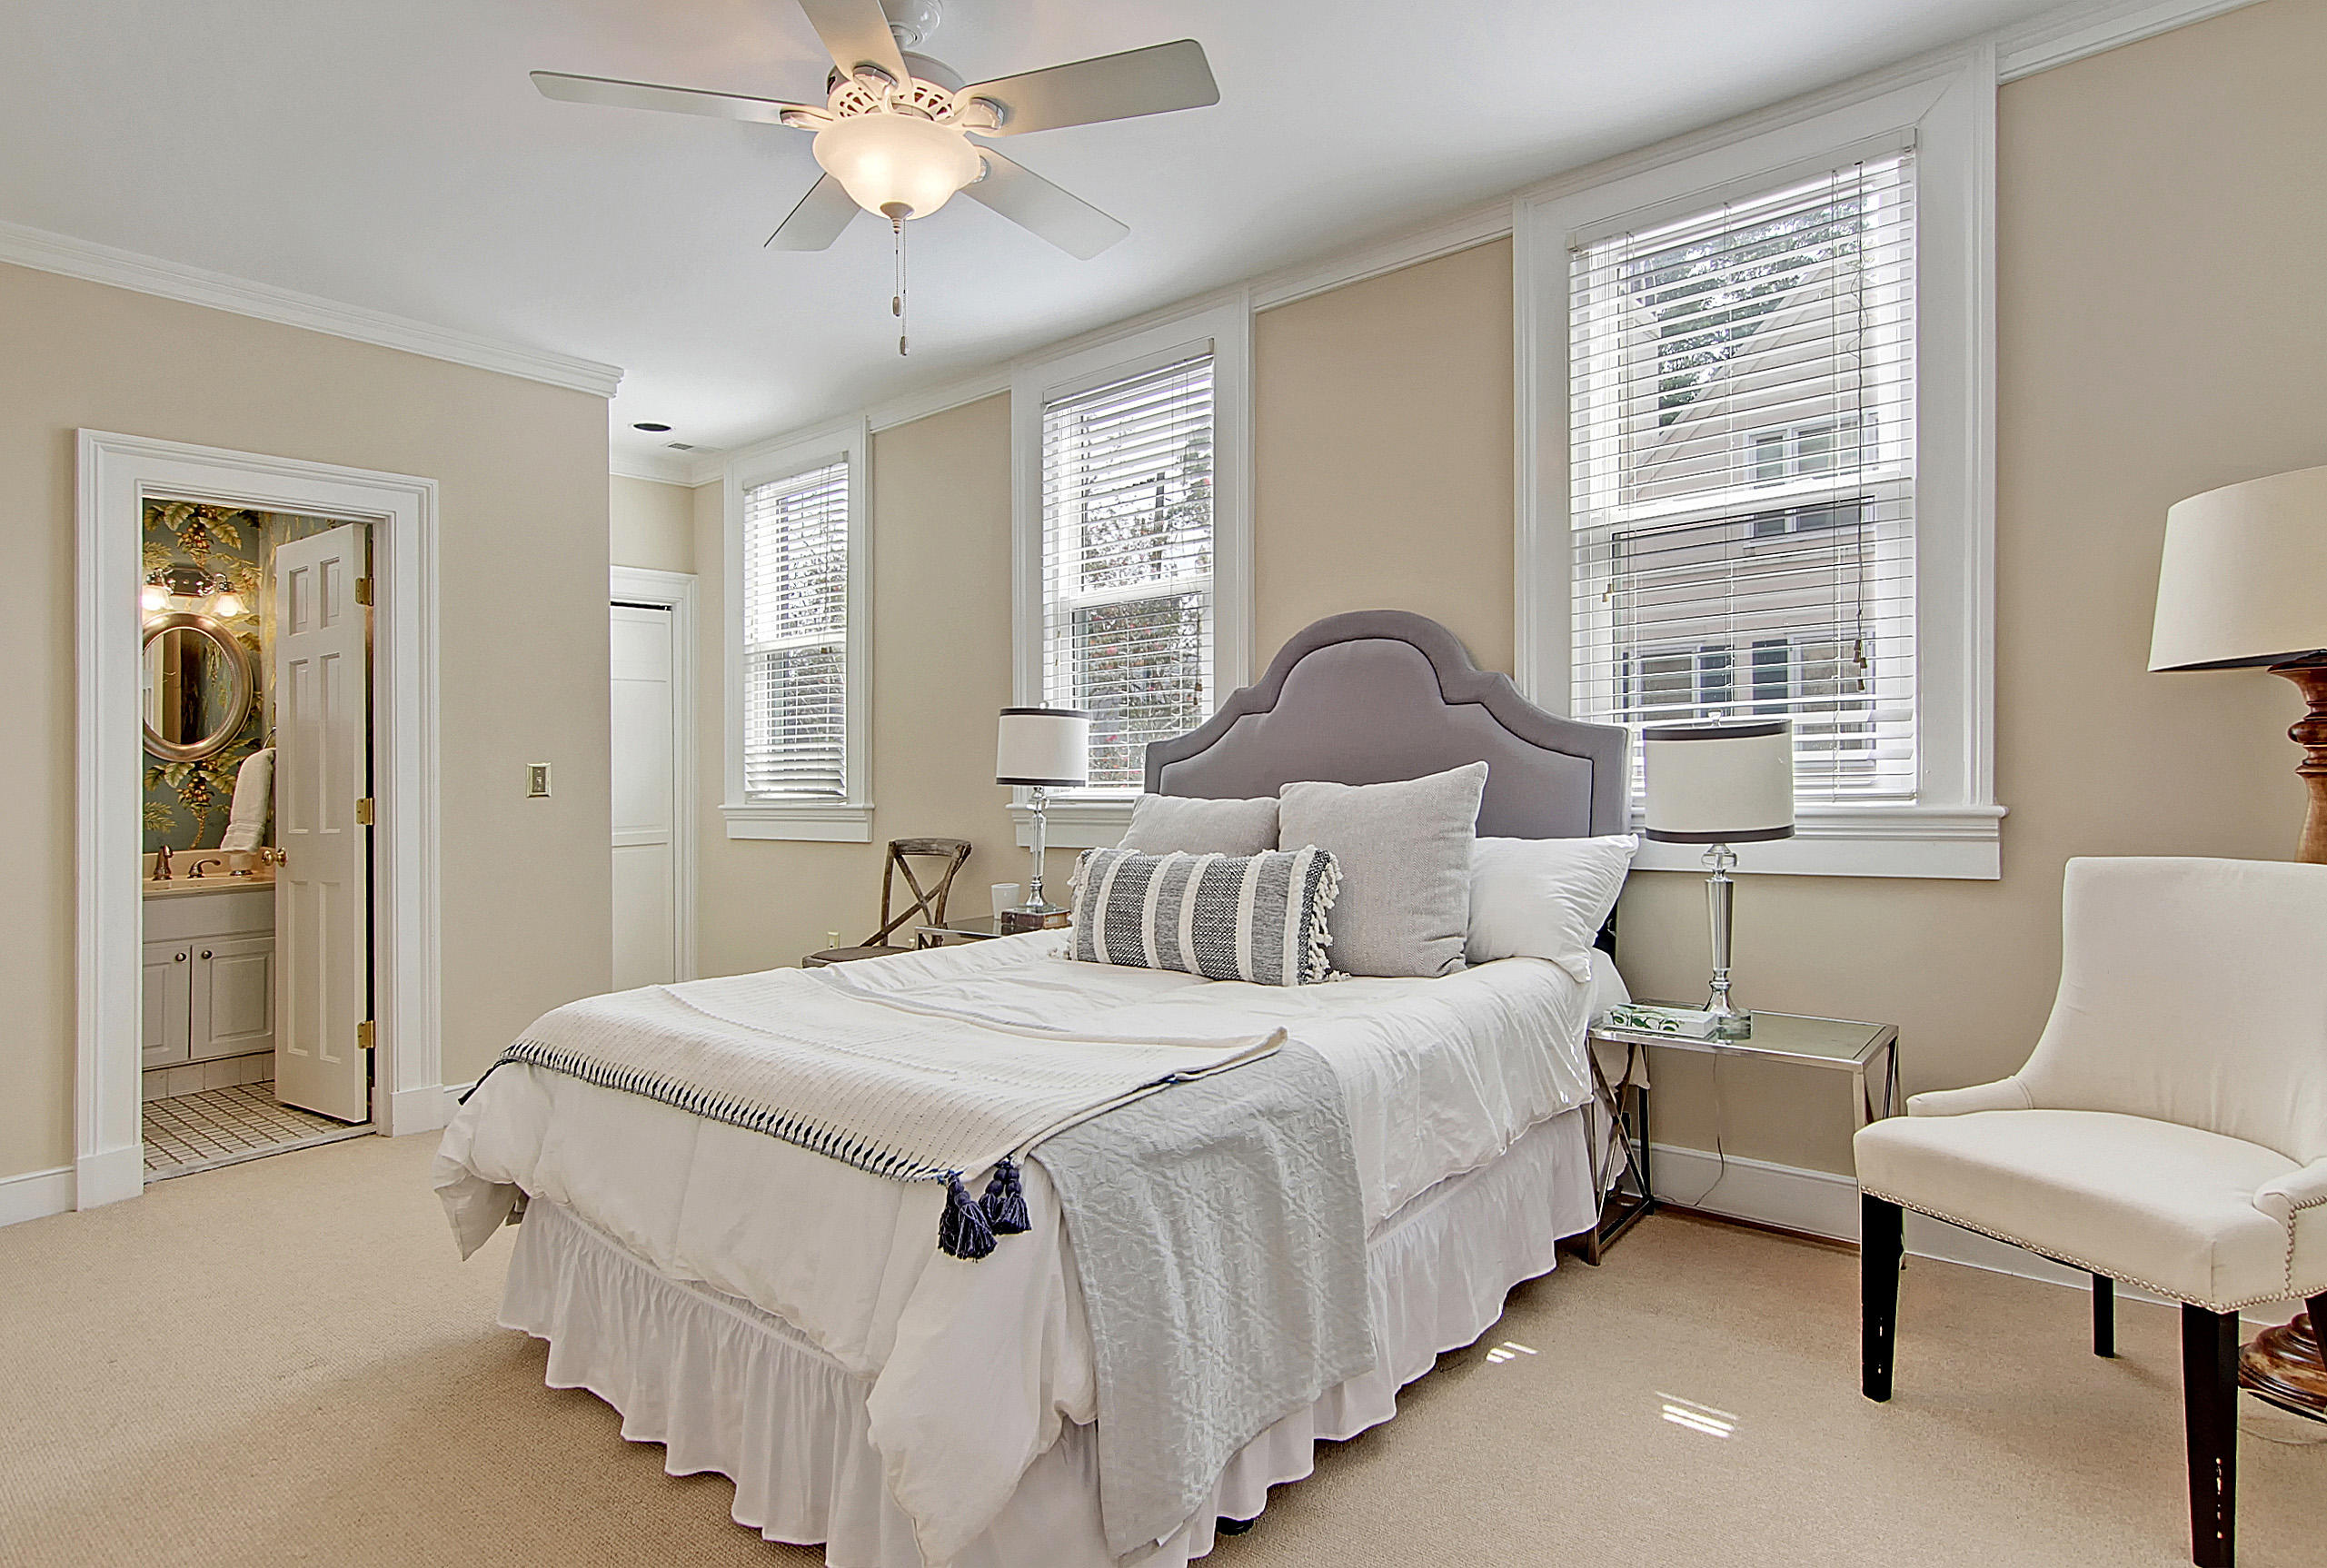 Harleston Village Condos For Sale - 7 West Street B, Charleston, SC - 10